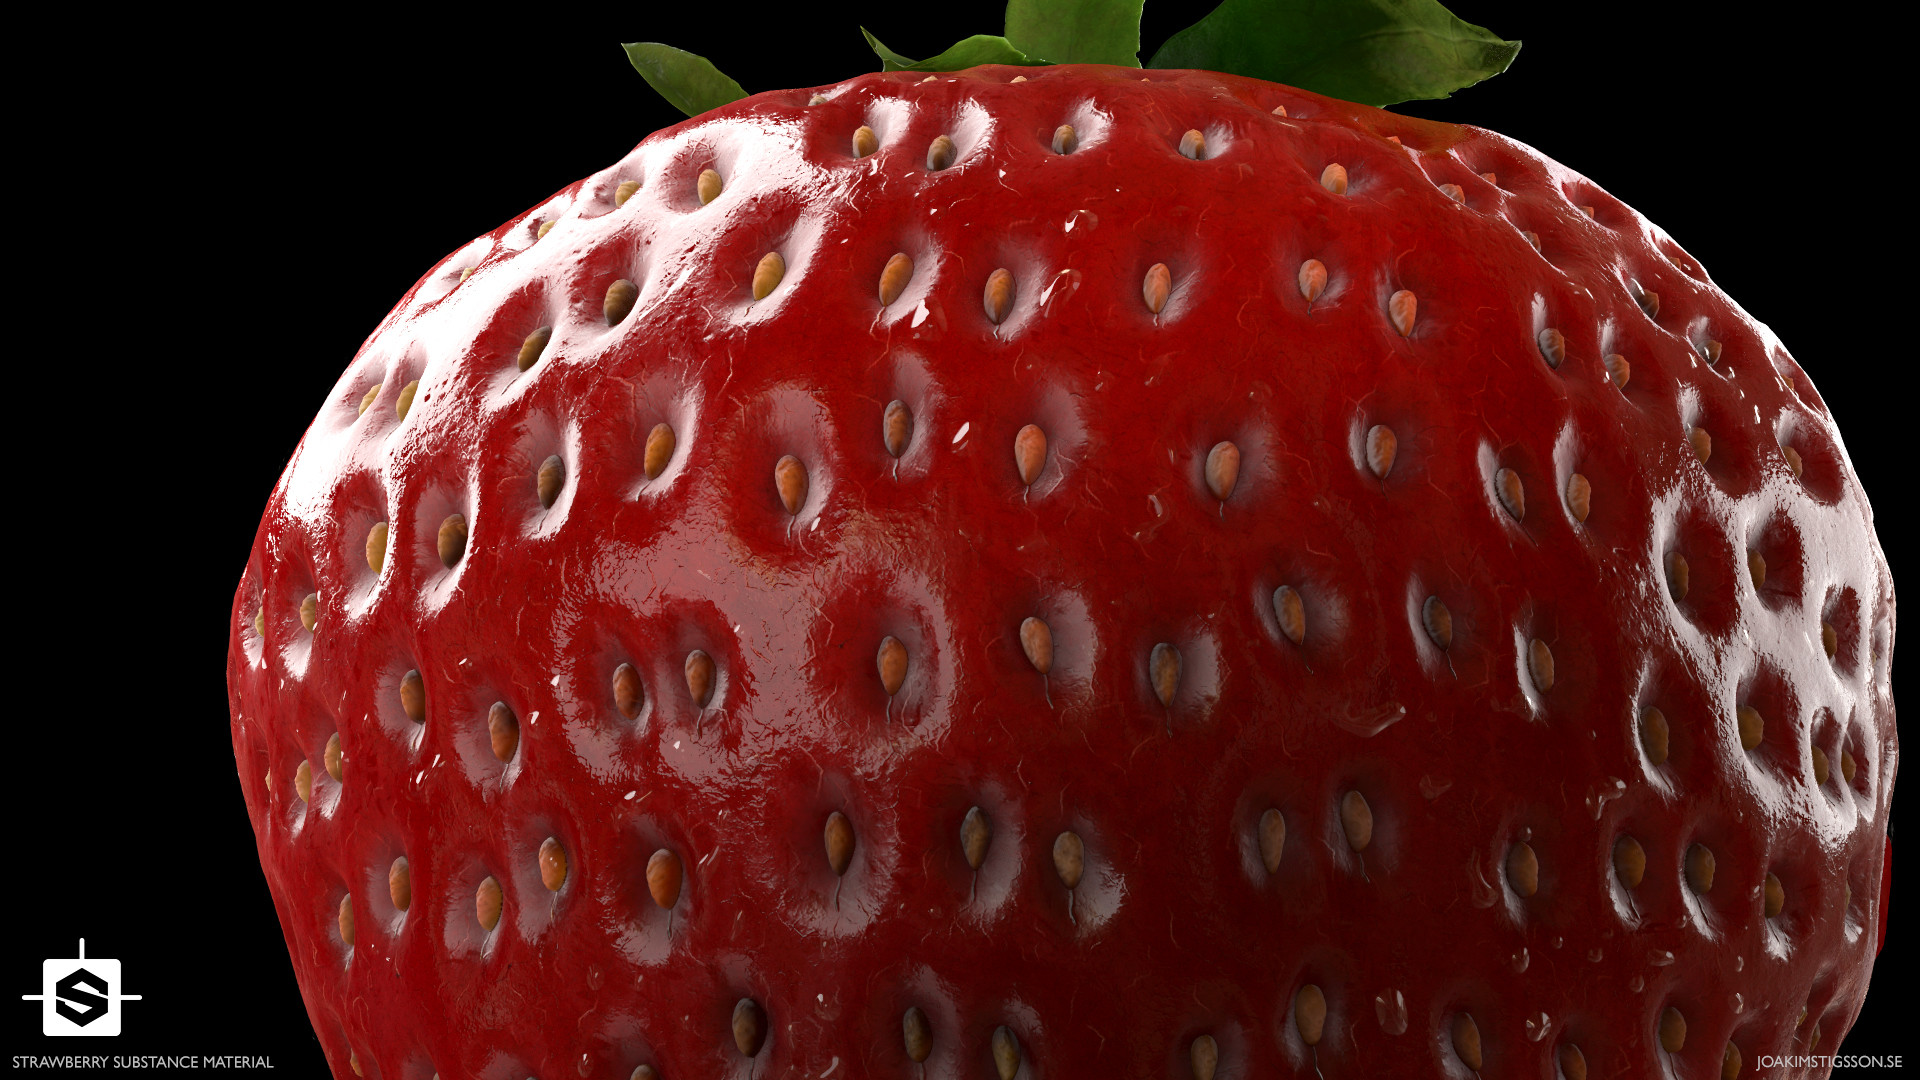 Joakim stigsson strawberry 03 render